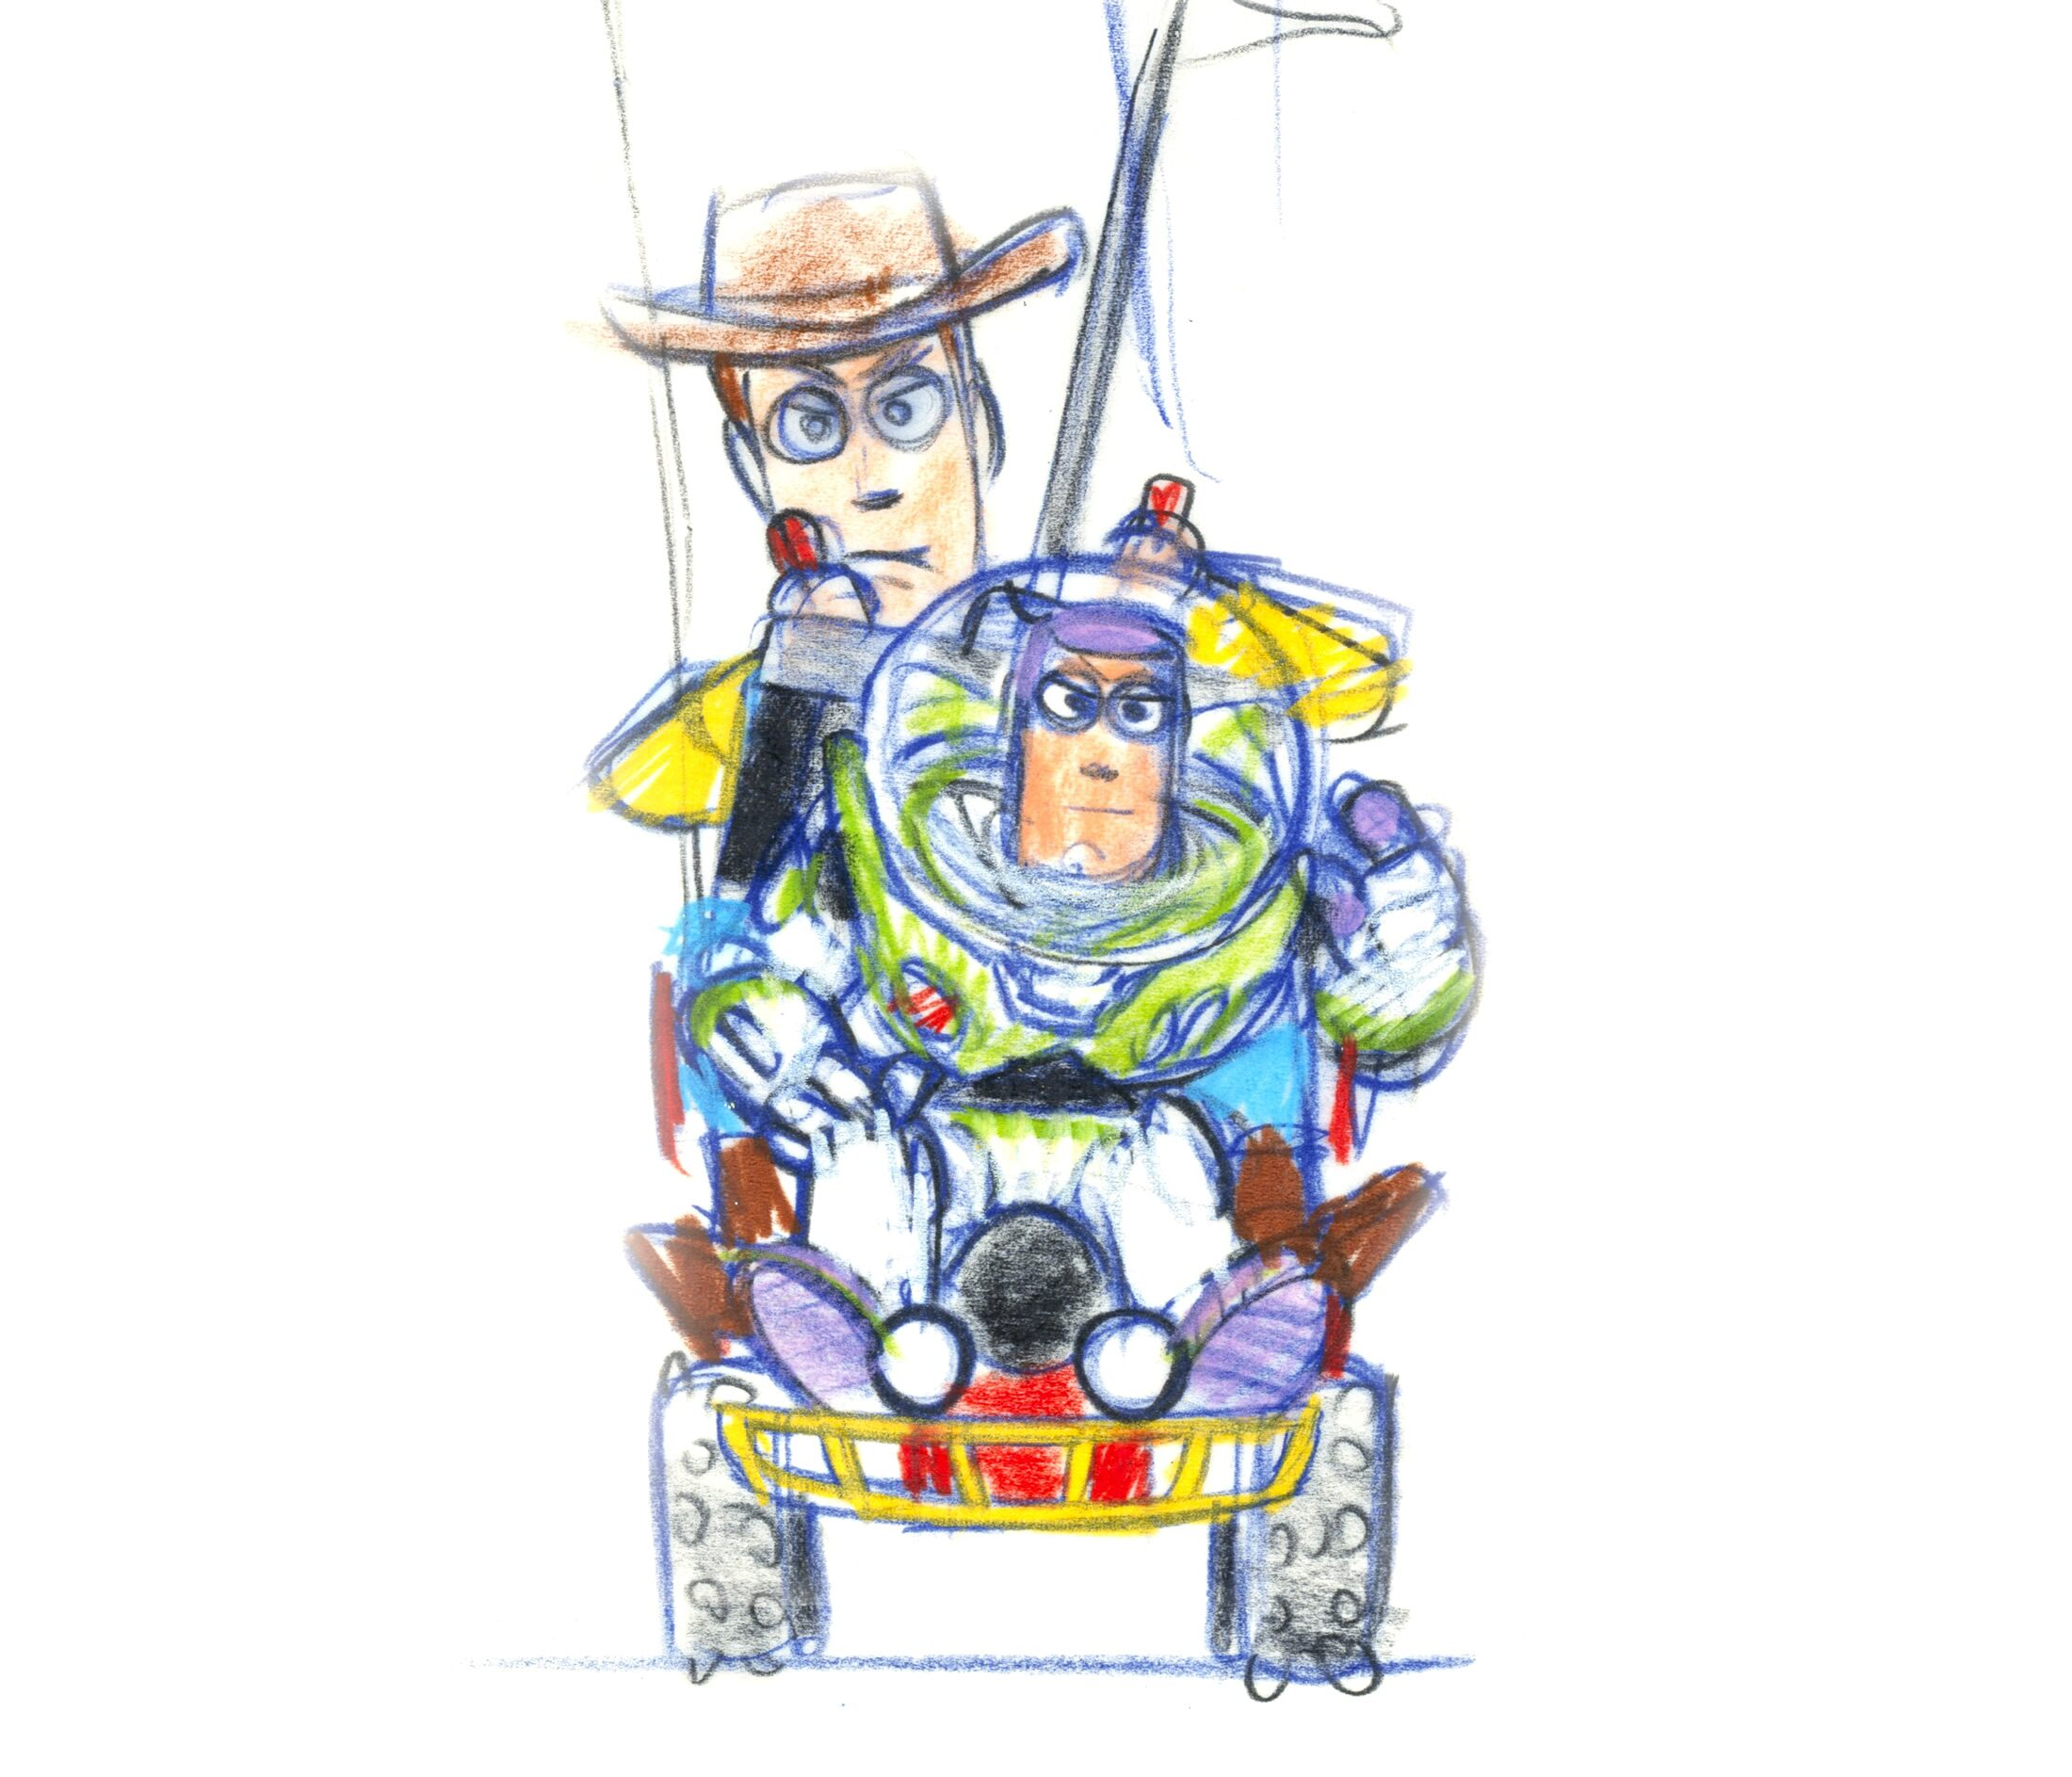 Buzz and Woody concept sketch